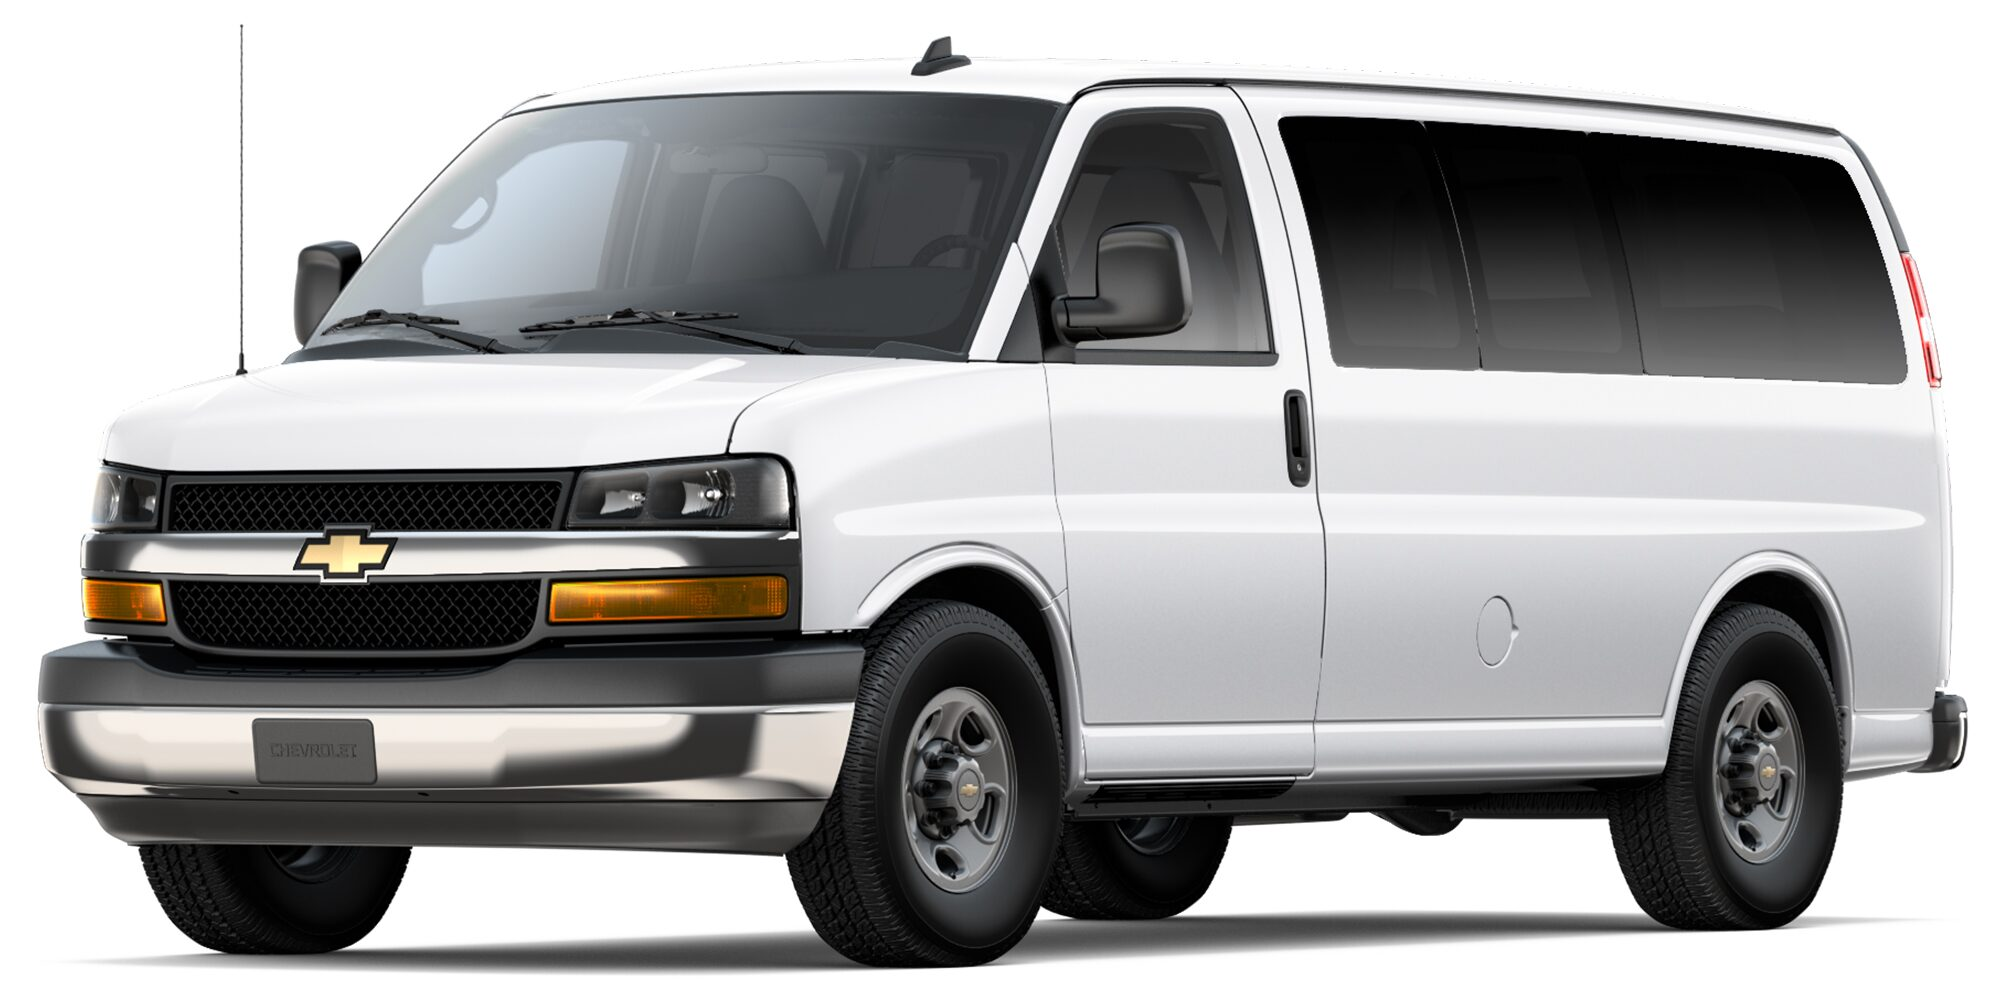 2017 chevrolet express passenger van. Black Bedroom Furniture Sets. Home Design Ideas